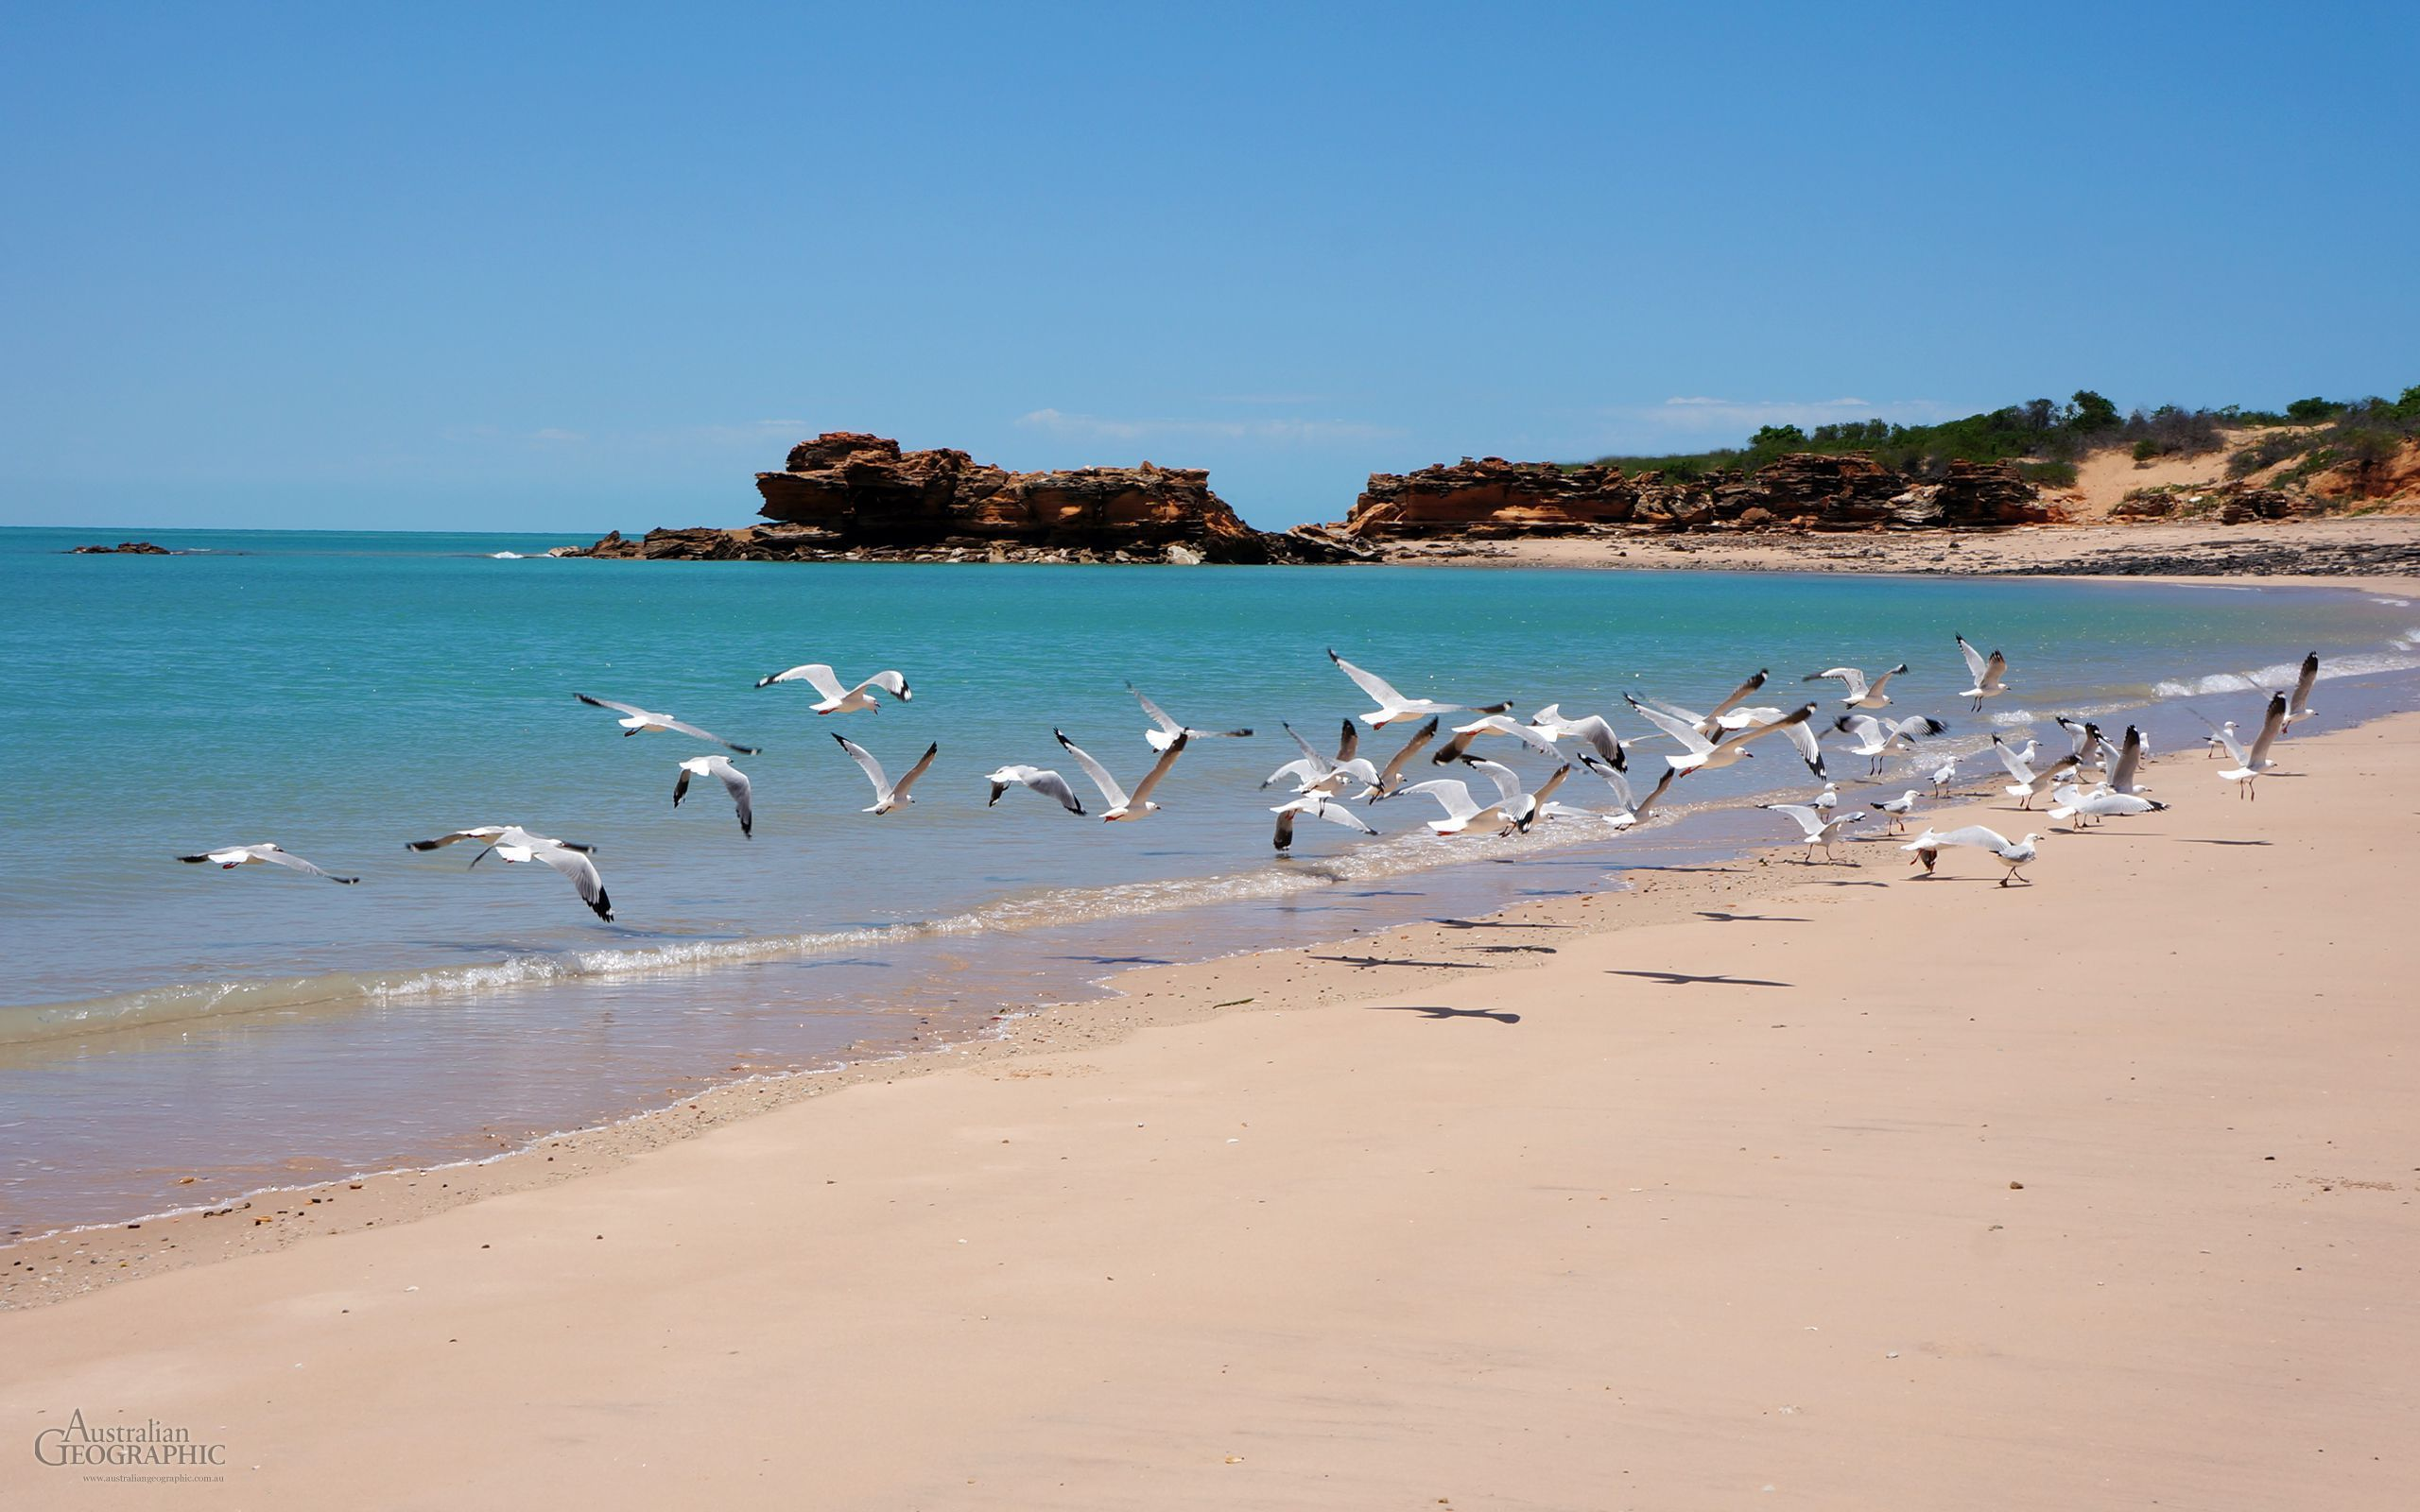 Australian Beach High Quality Wallpapers